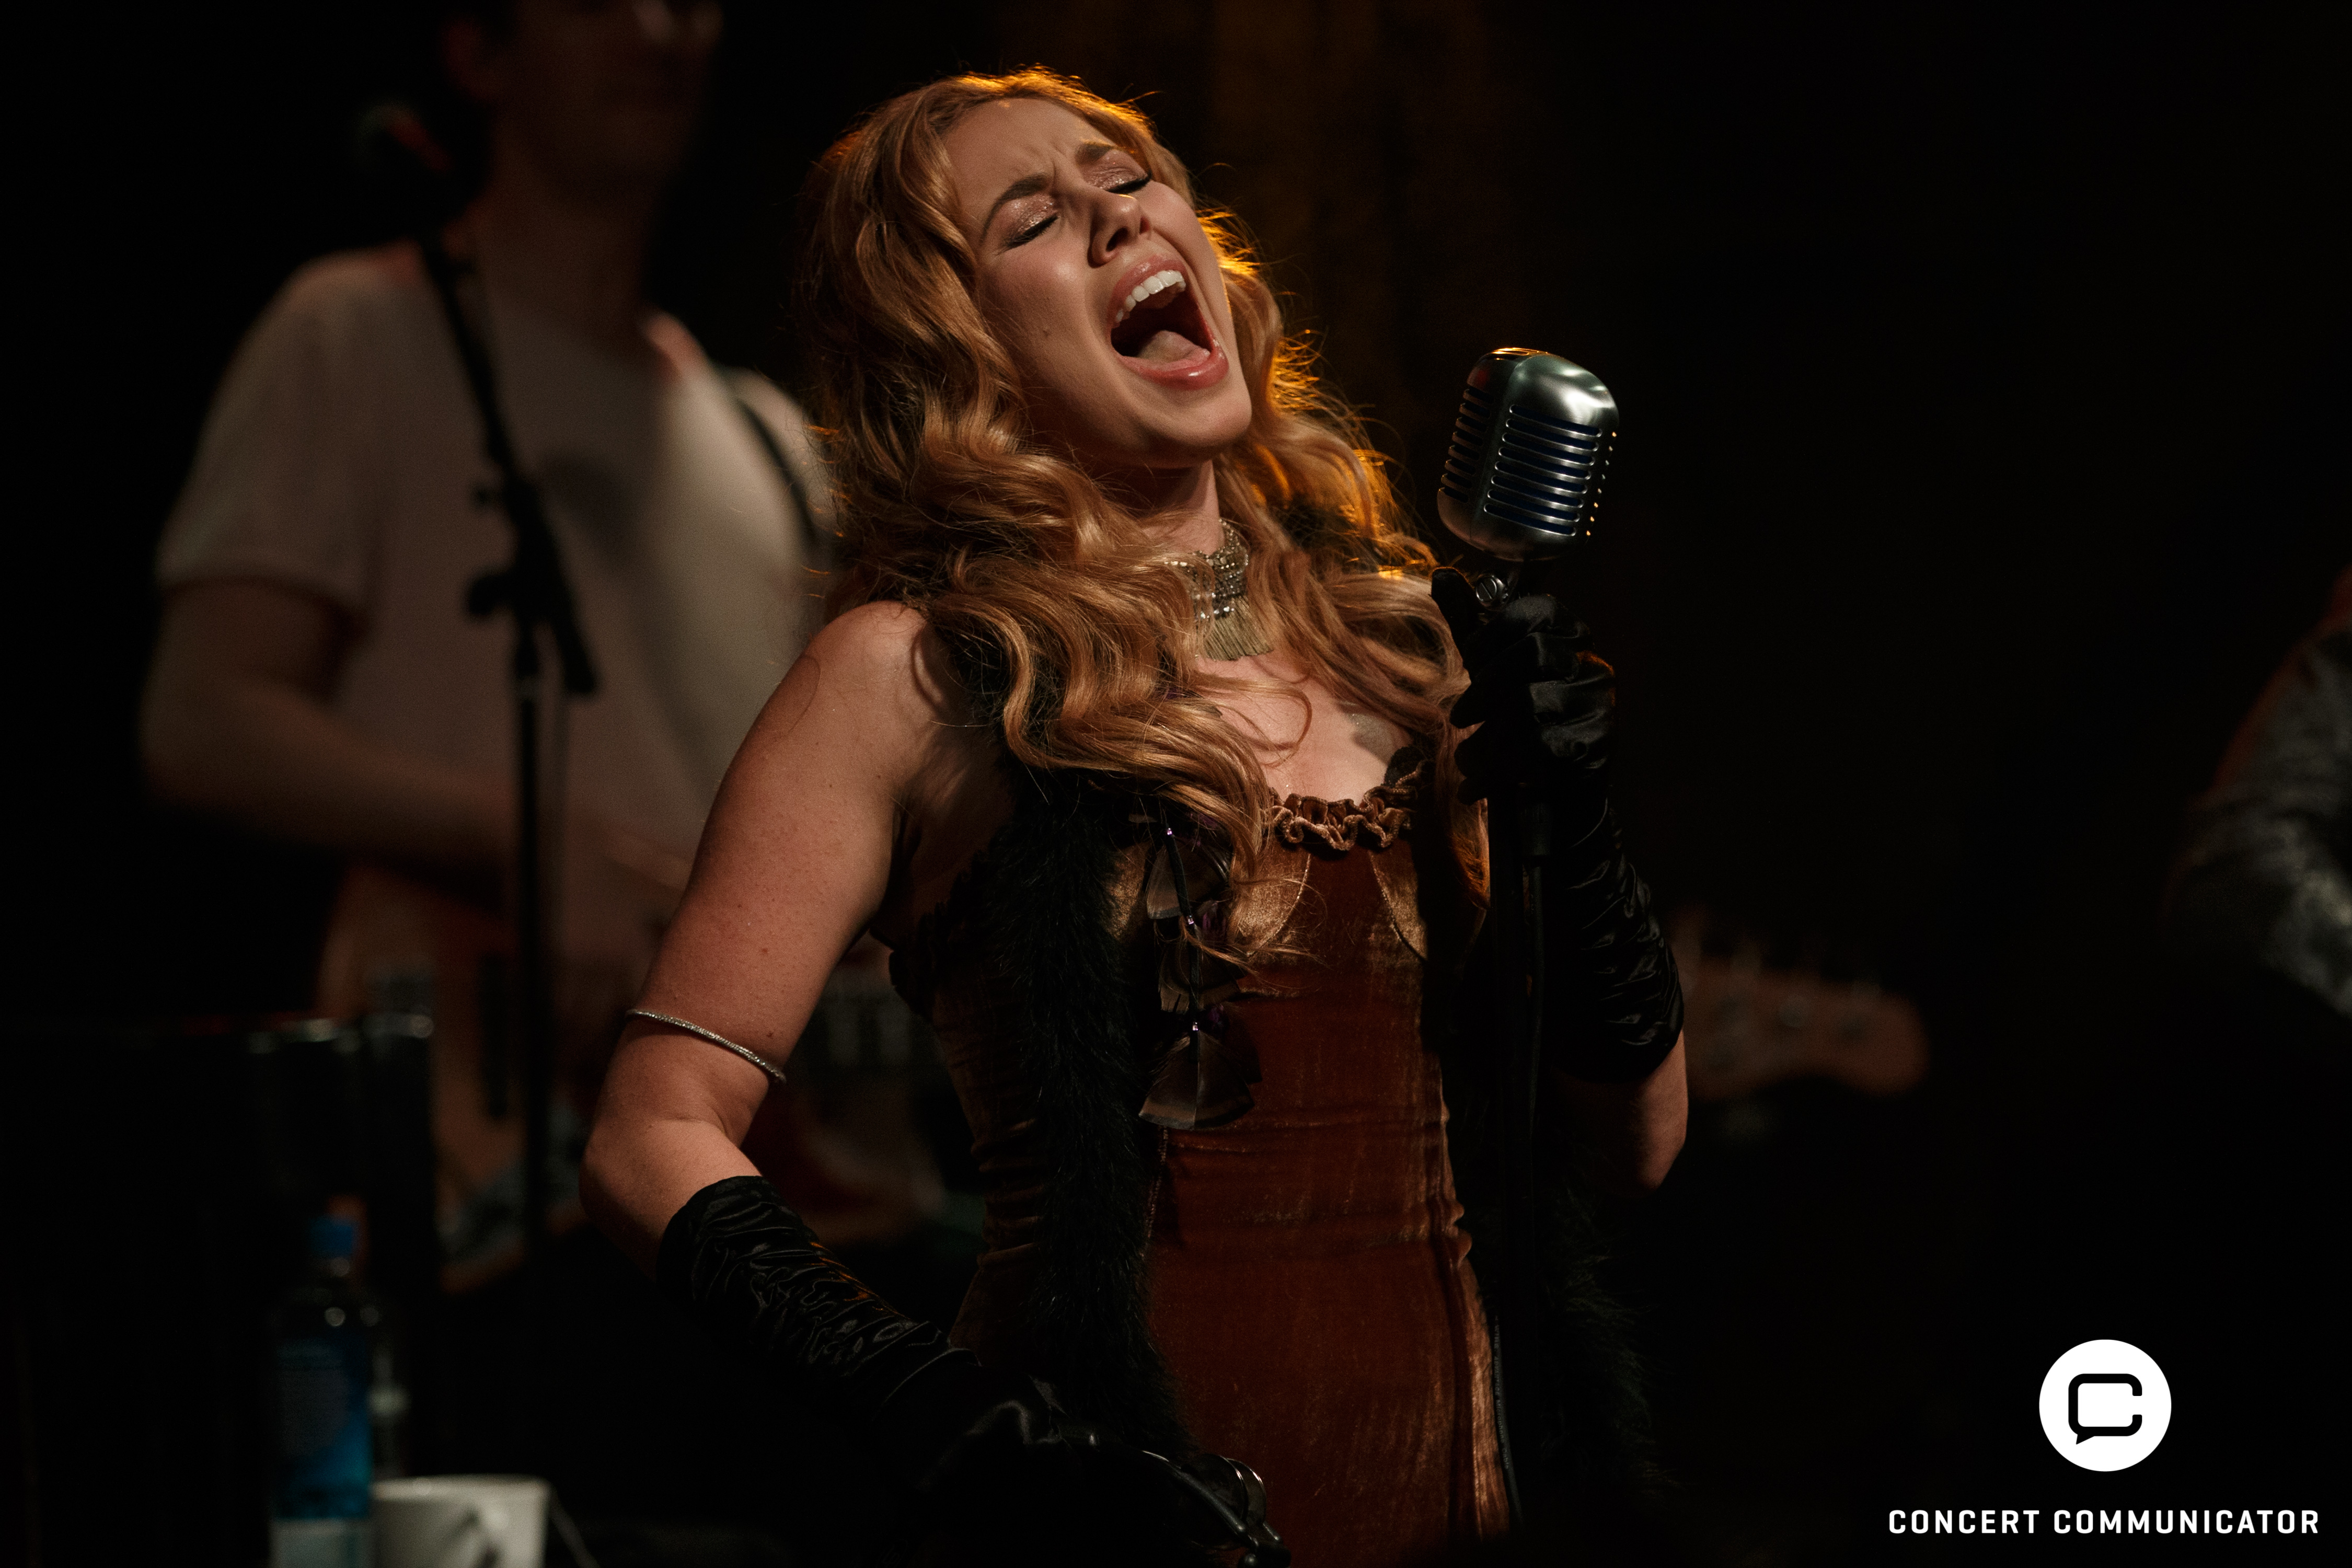 Haley Reinhart @ Amsterdam Hall